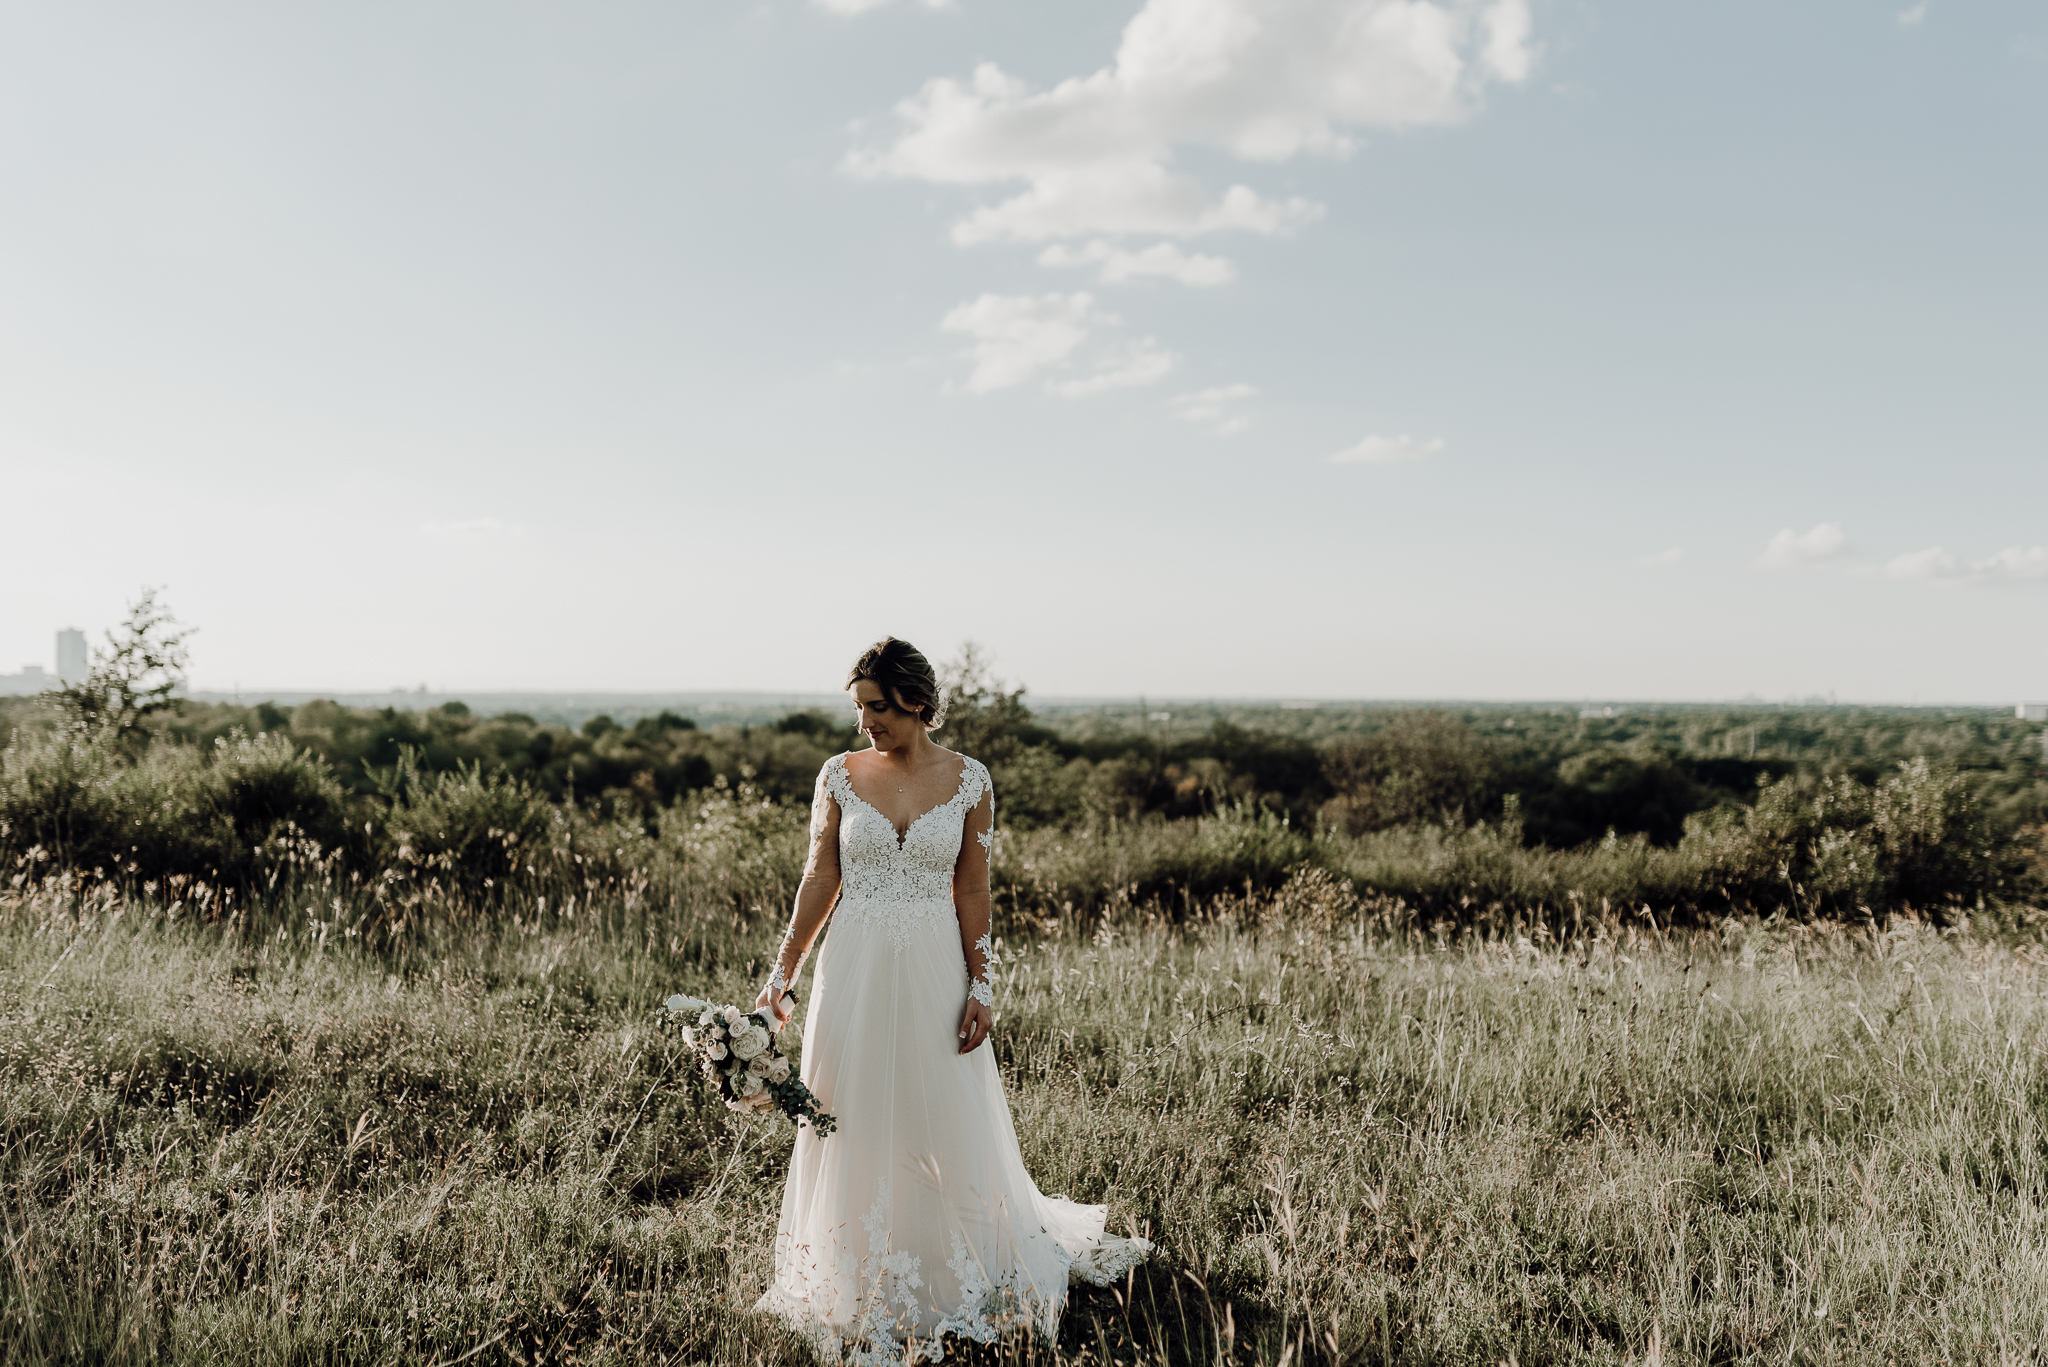 denton texas bridal session-boho bridal session-thedarkroom fort worth | kristen giles photography | texas wedding photographer-6-blog.jpg